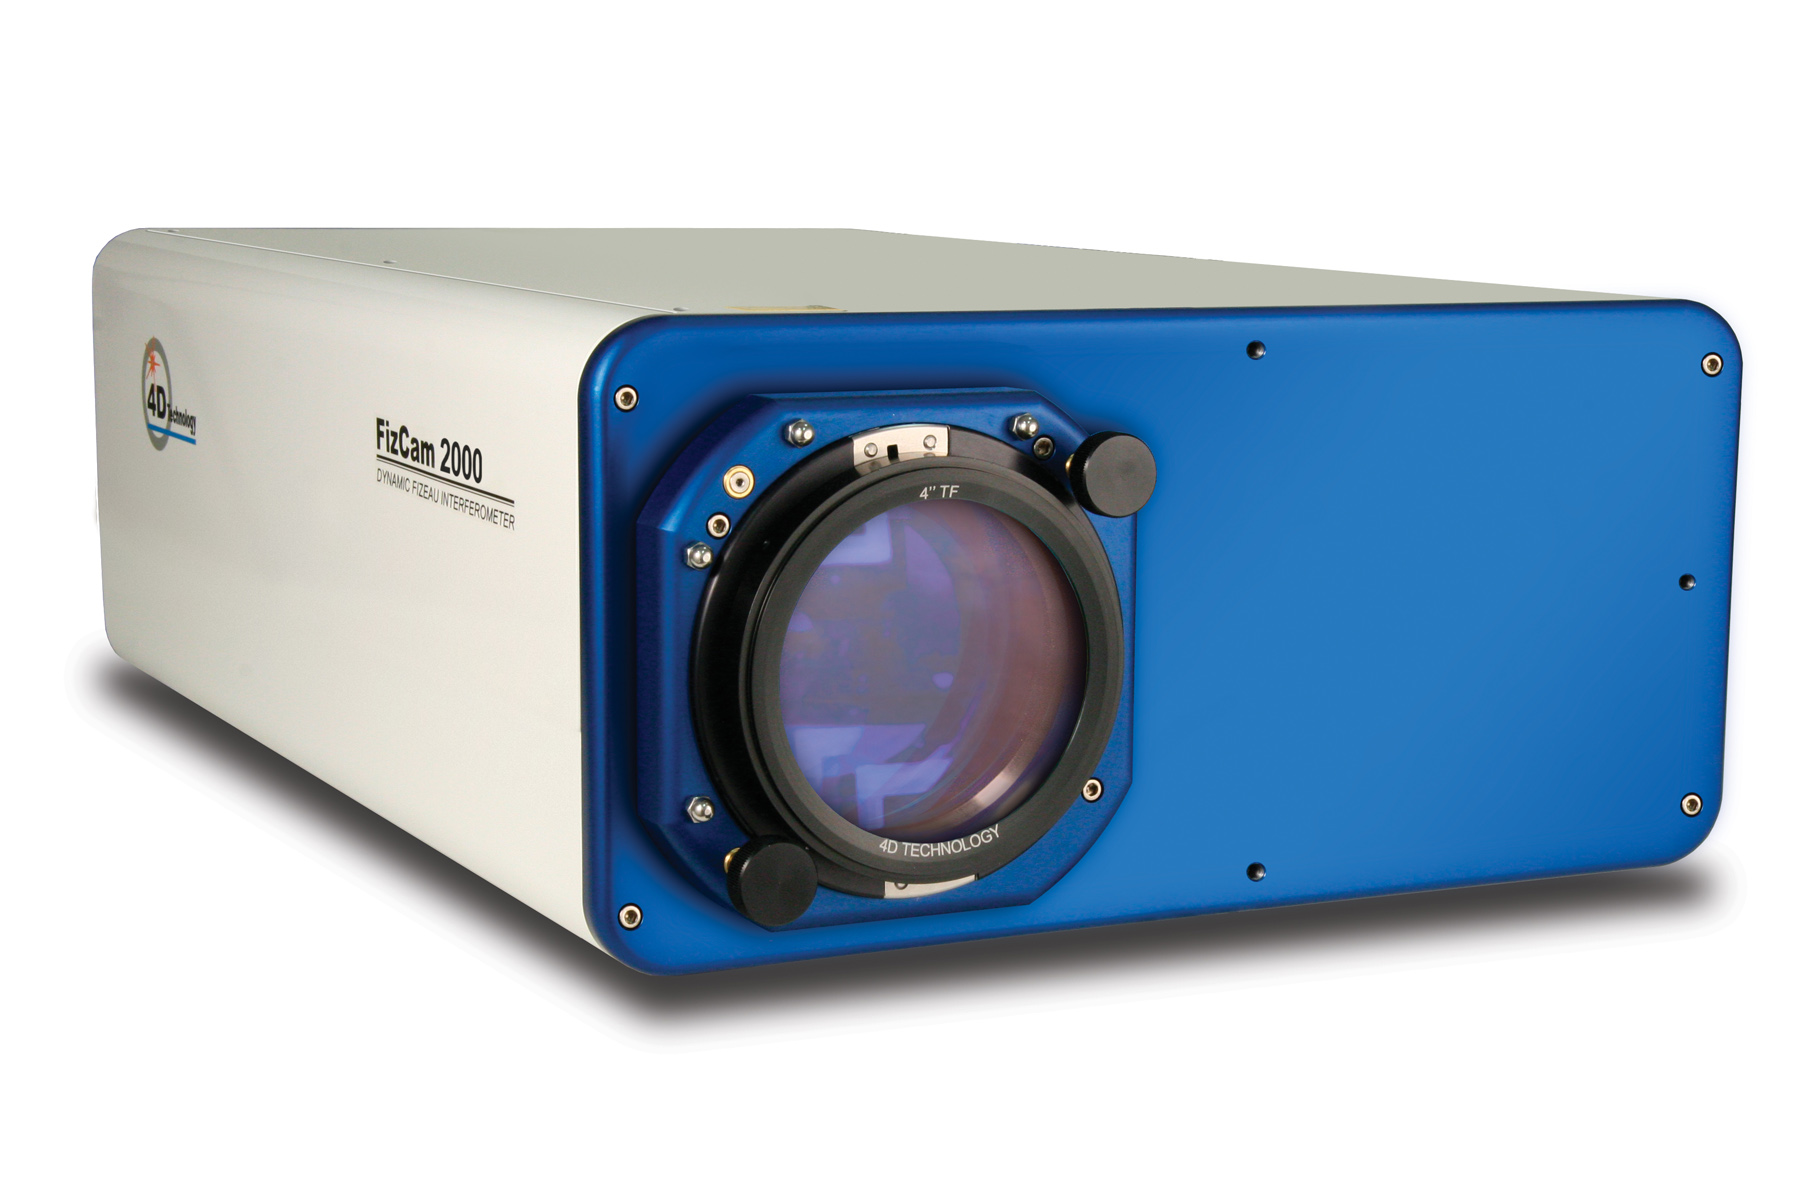 Fizeau Interferometer - FizCam 100mm aperture dynamic laser interferometer